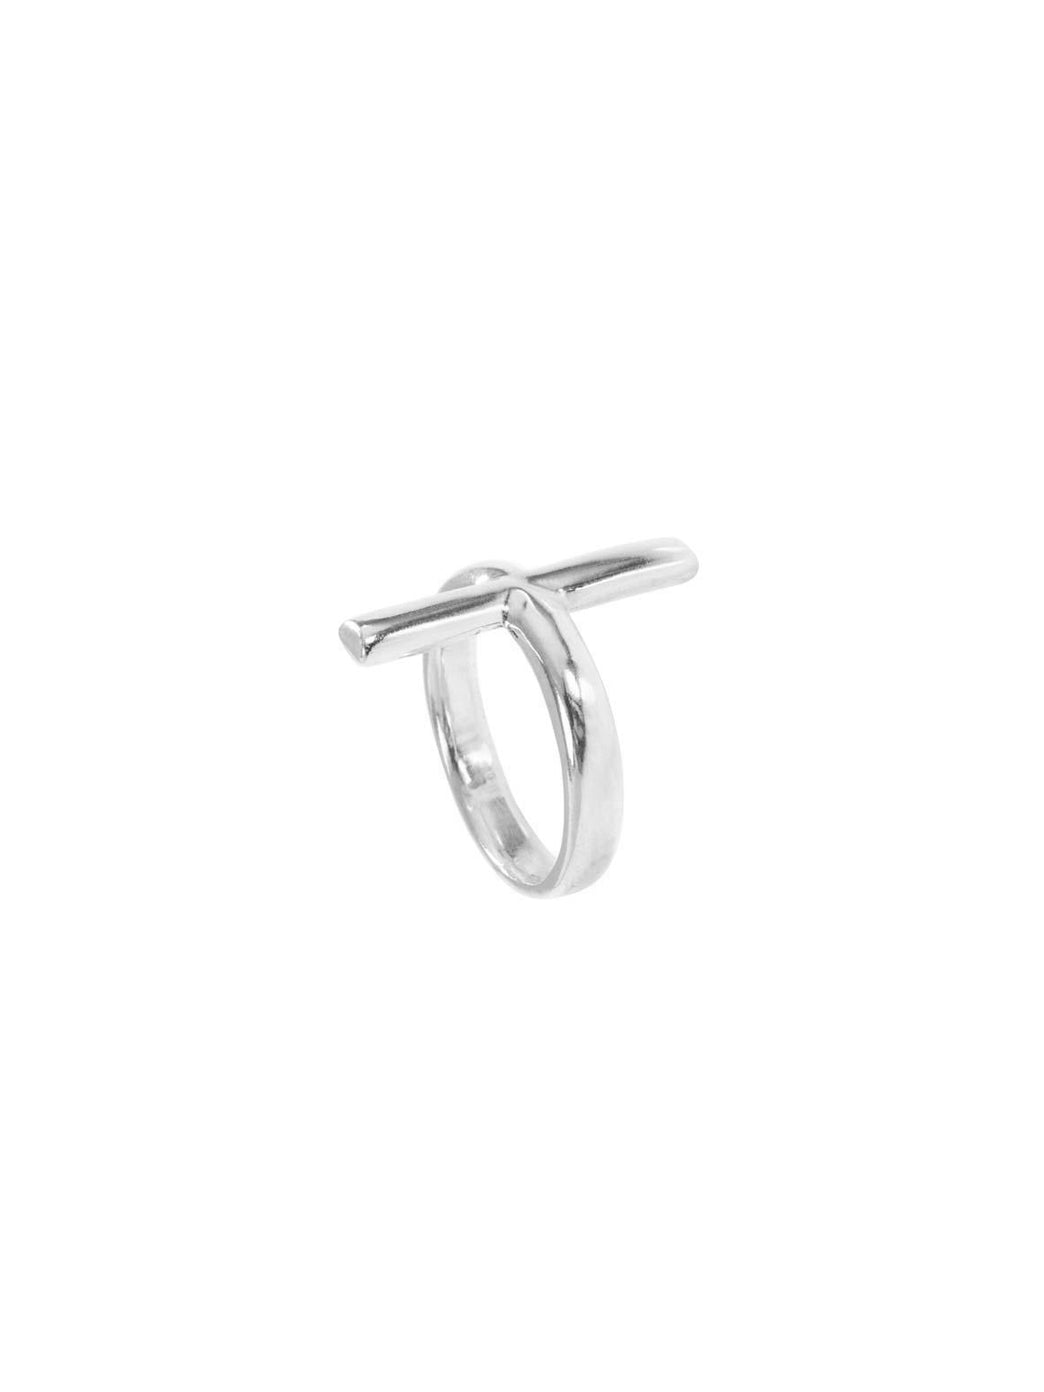 Fiorina Jewellery Grande Cross Ring Side View